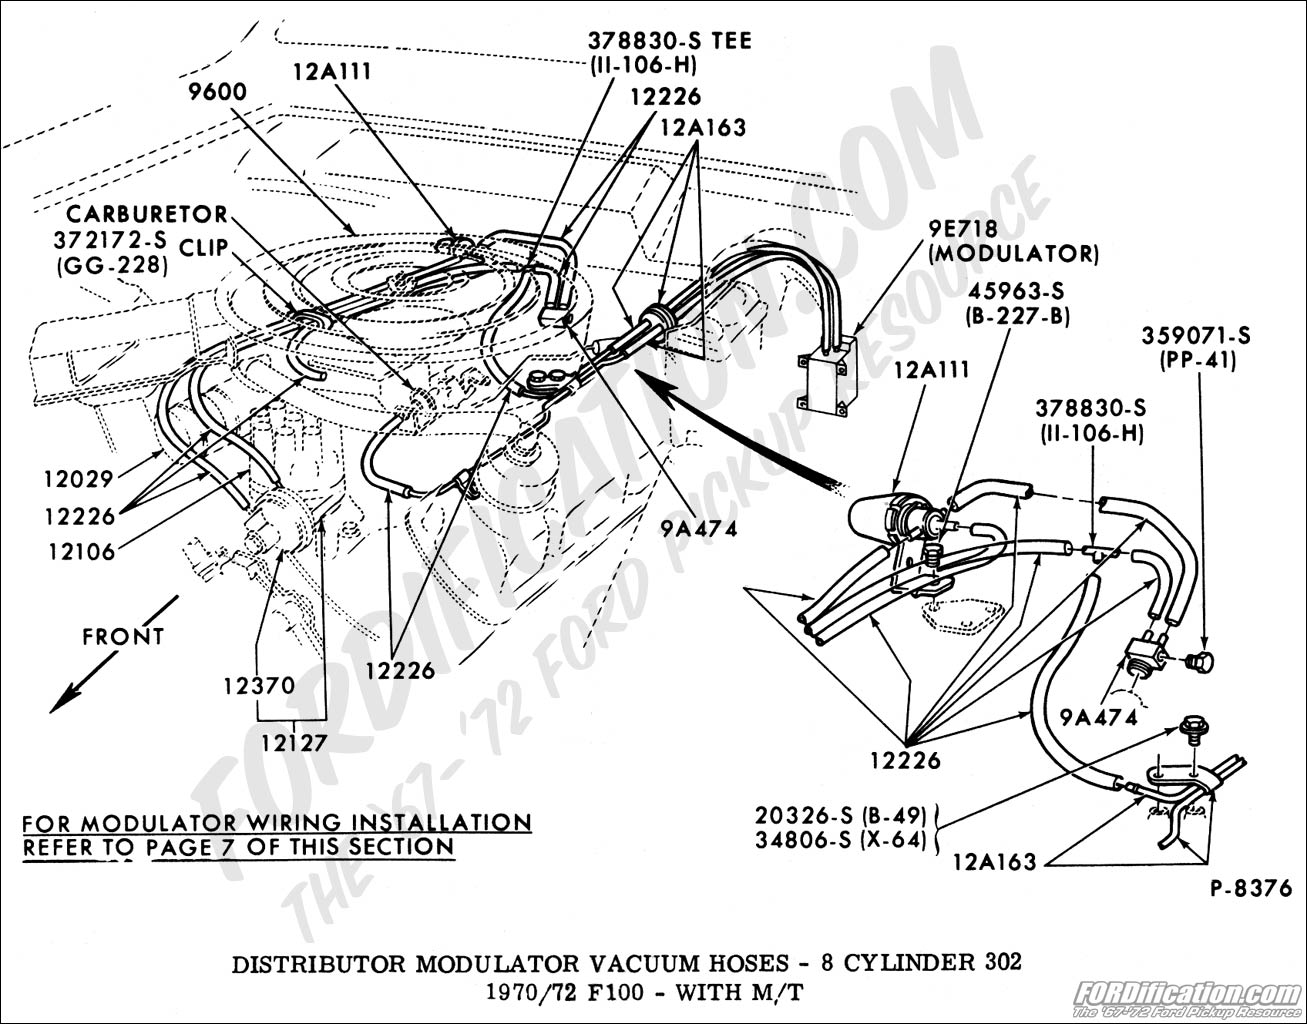 Ford F 250 460 Engine Diagram Wiring Library 2005 F150 Window Motor Truck Technical Drawings And Schematics Section I